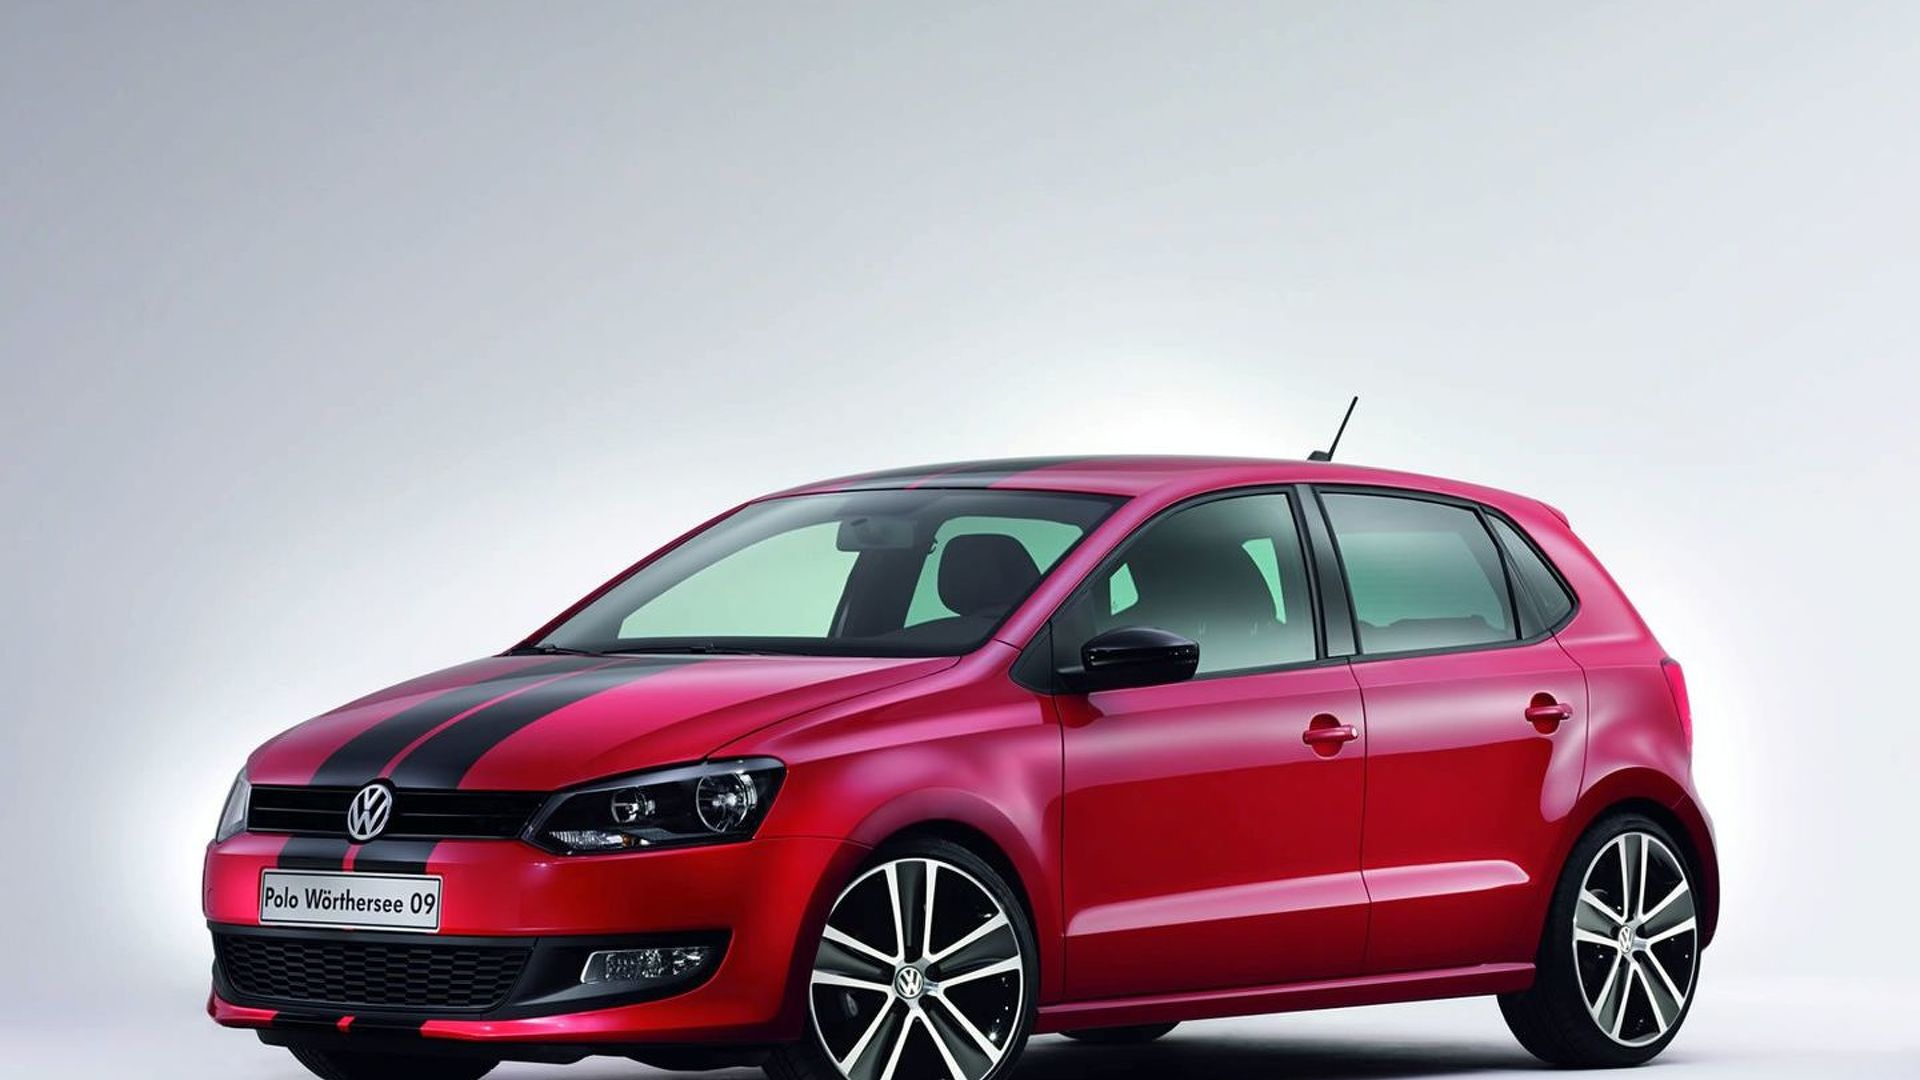 New Volkswagen Polo GTI Previewed with Wörthersee 09 Edition